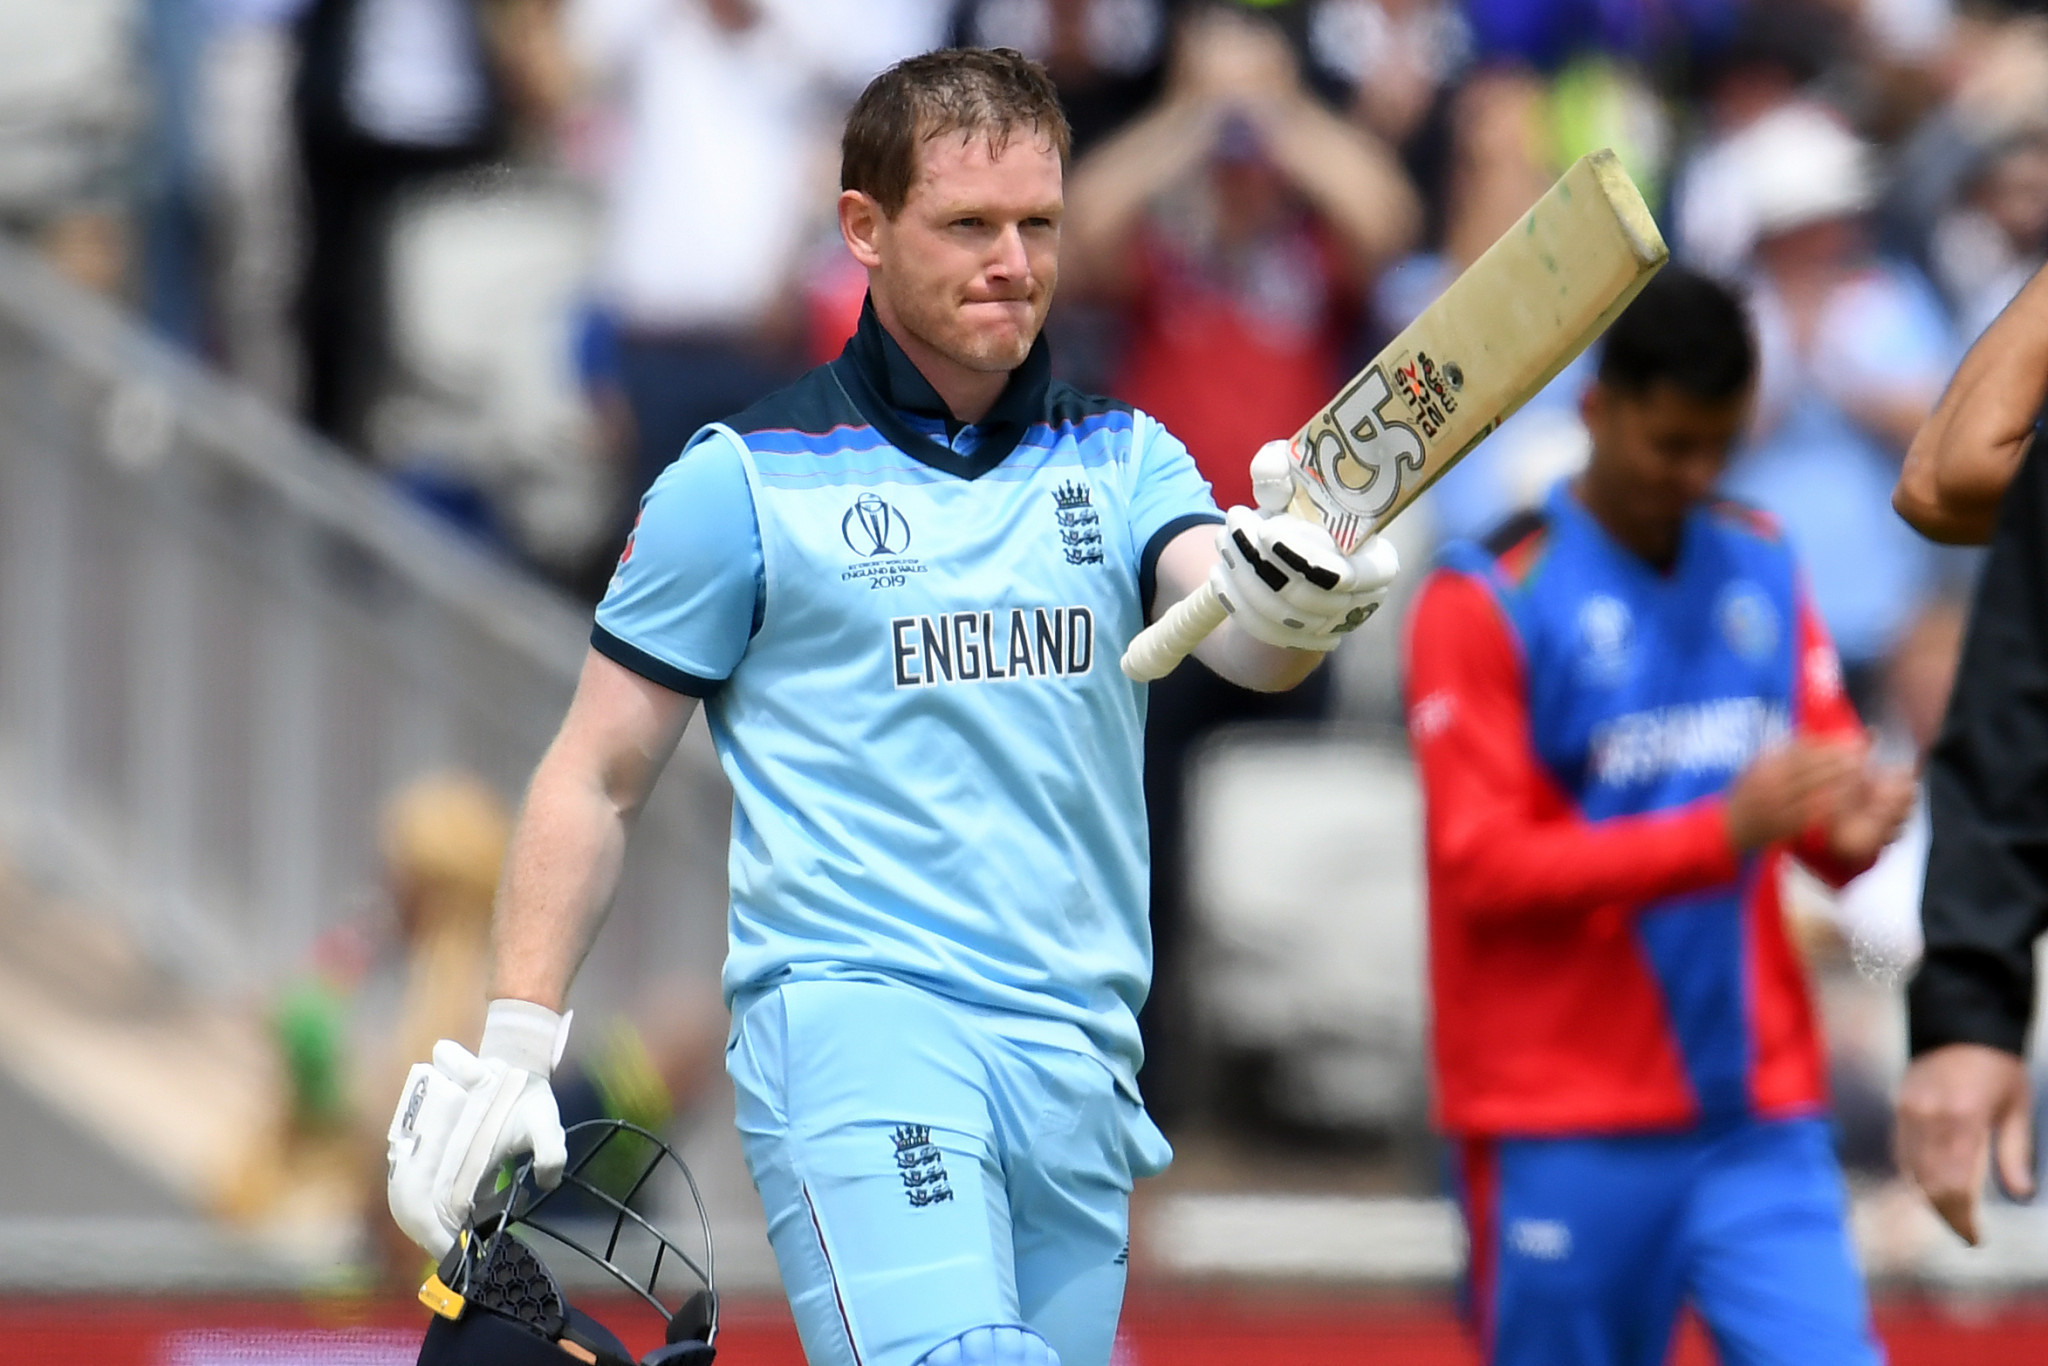 Morgan breaks sixes record as England crush Afghanistan at Cricket World Cup